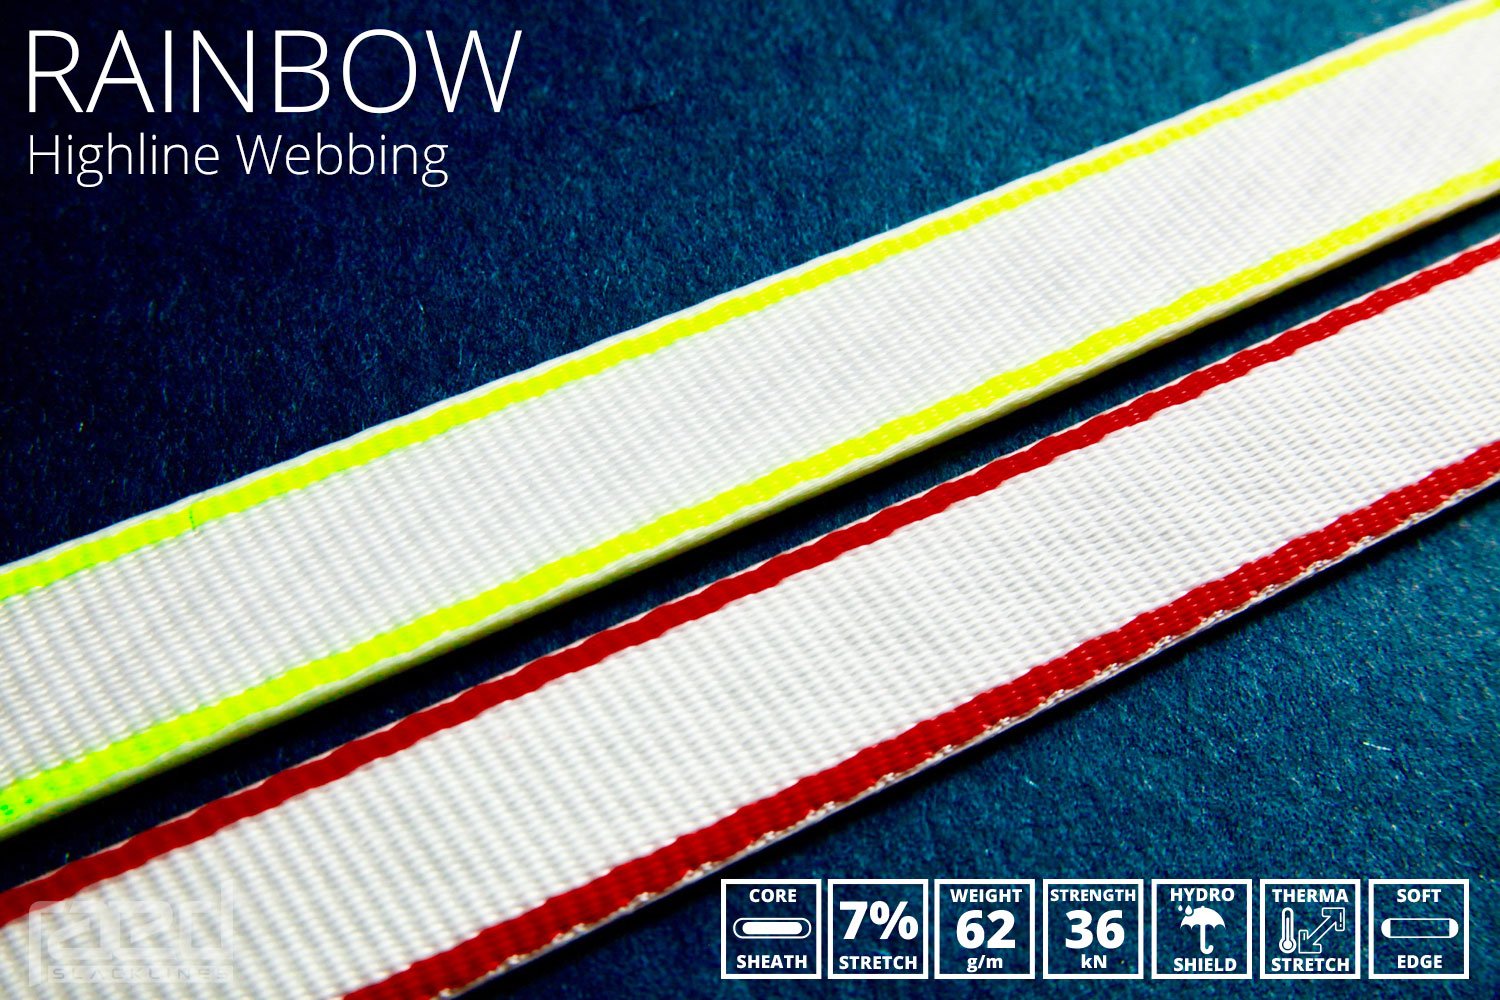 Rainbow polyester highline webbing with round edges